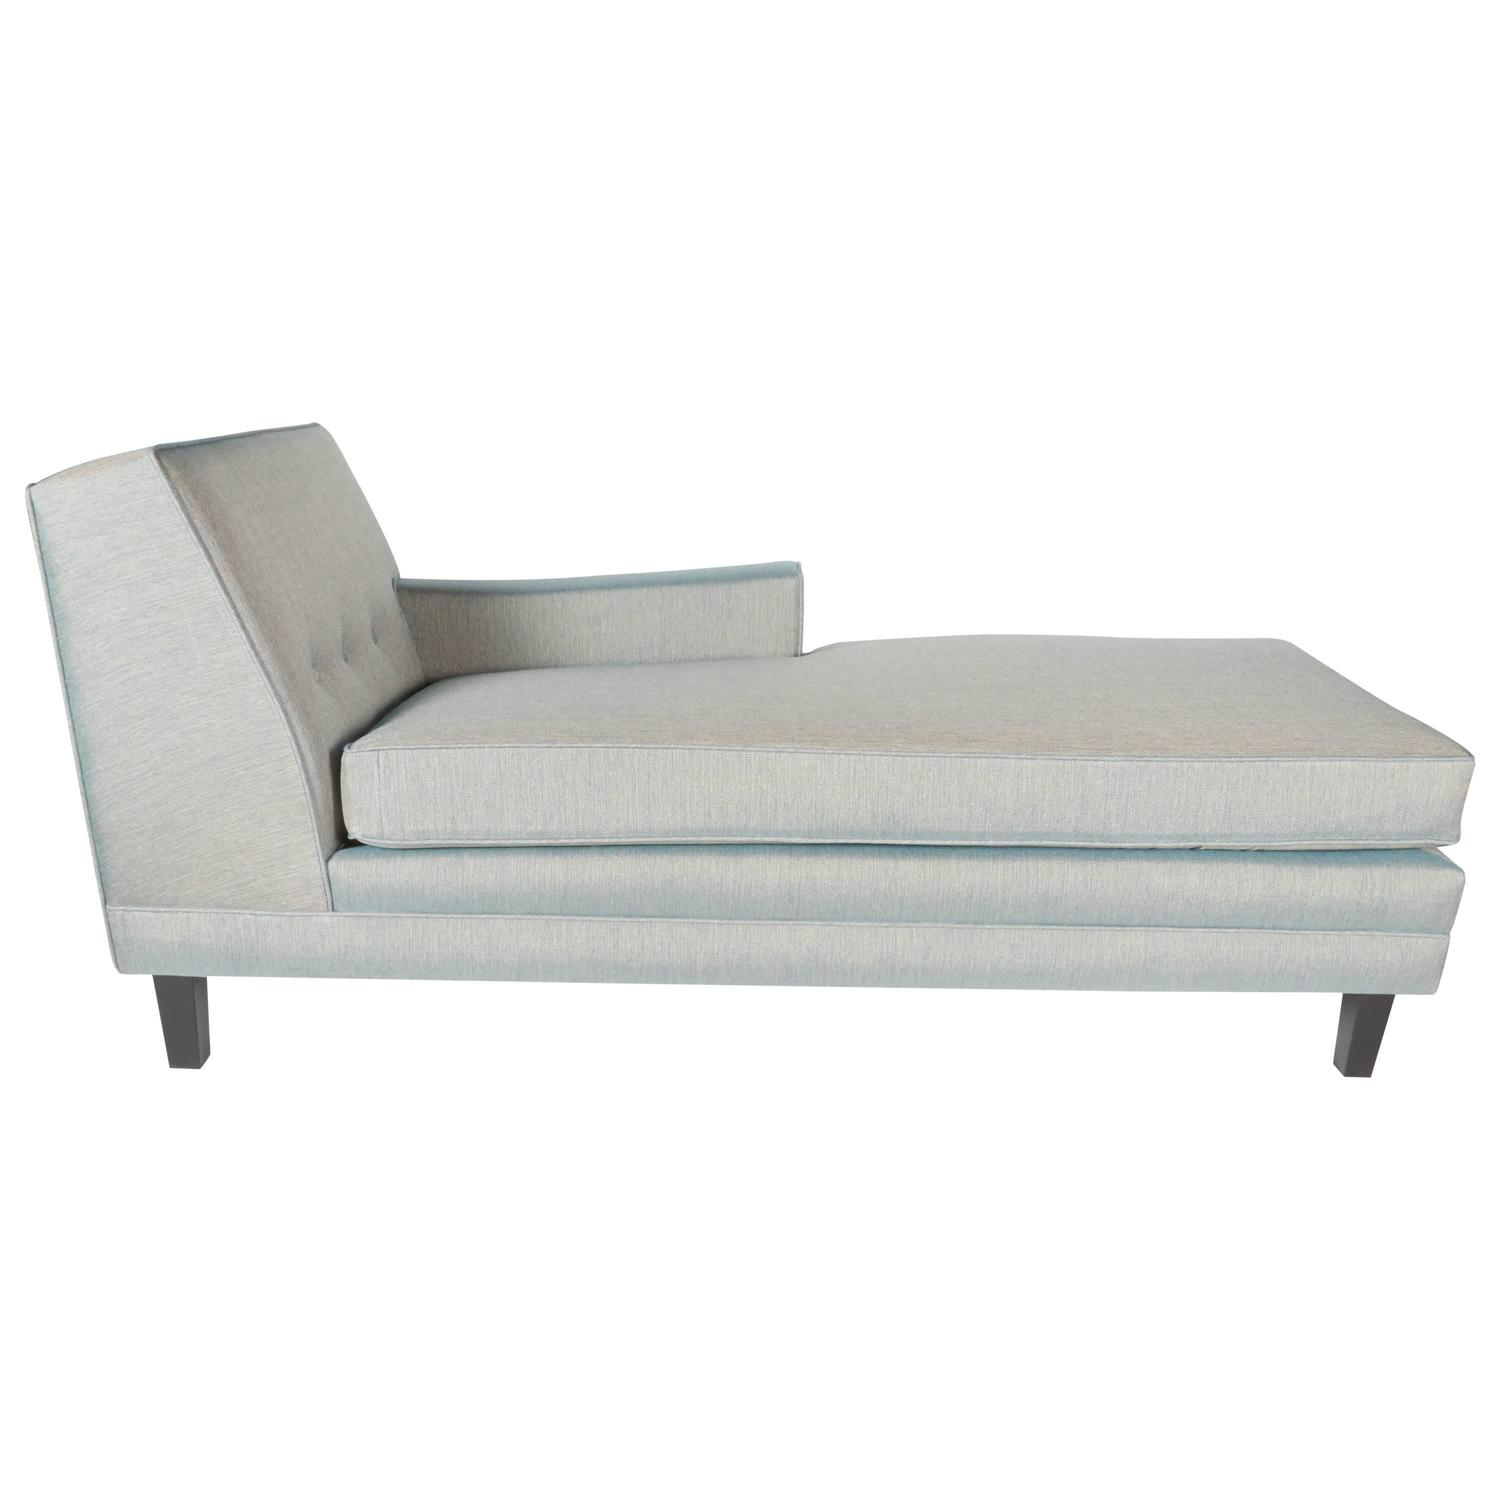 Mid century modern chaise lounge with low profile design for Modern design lounge chairs